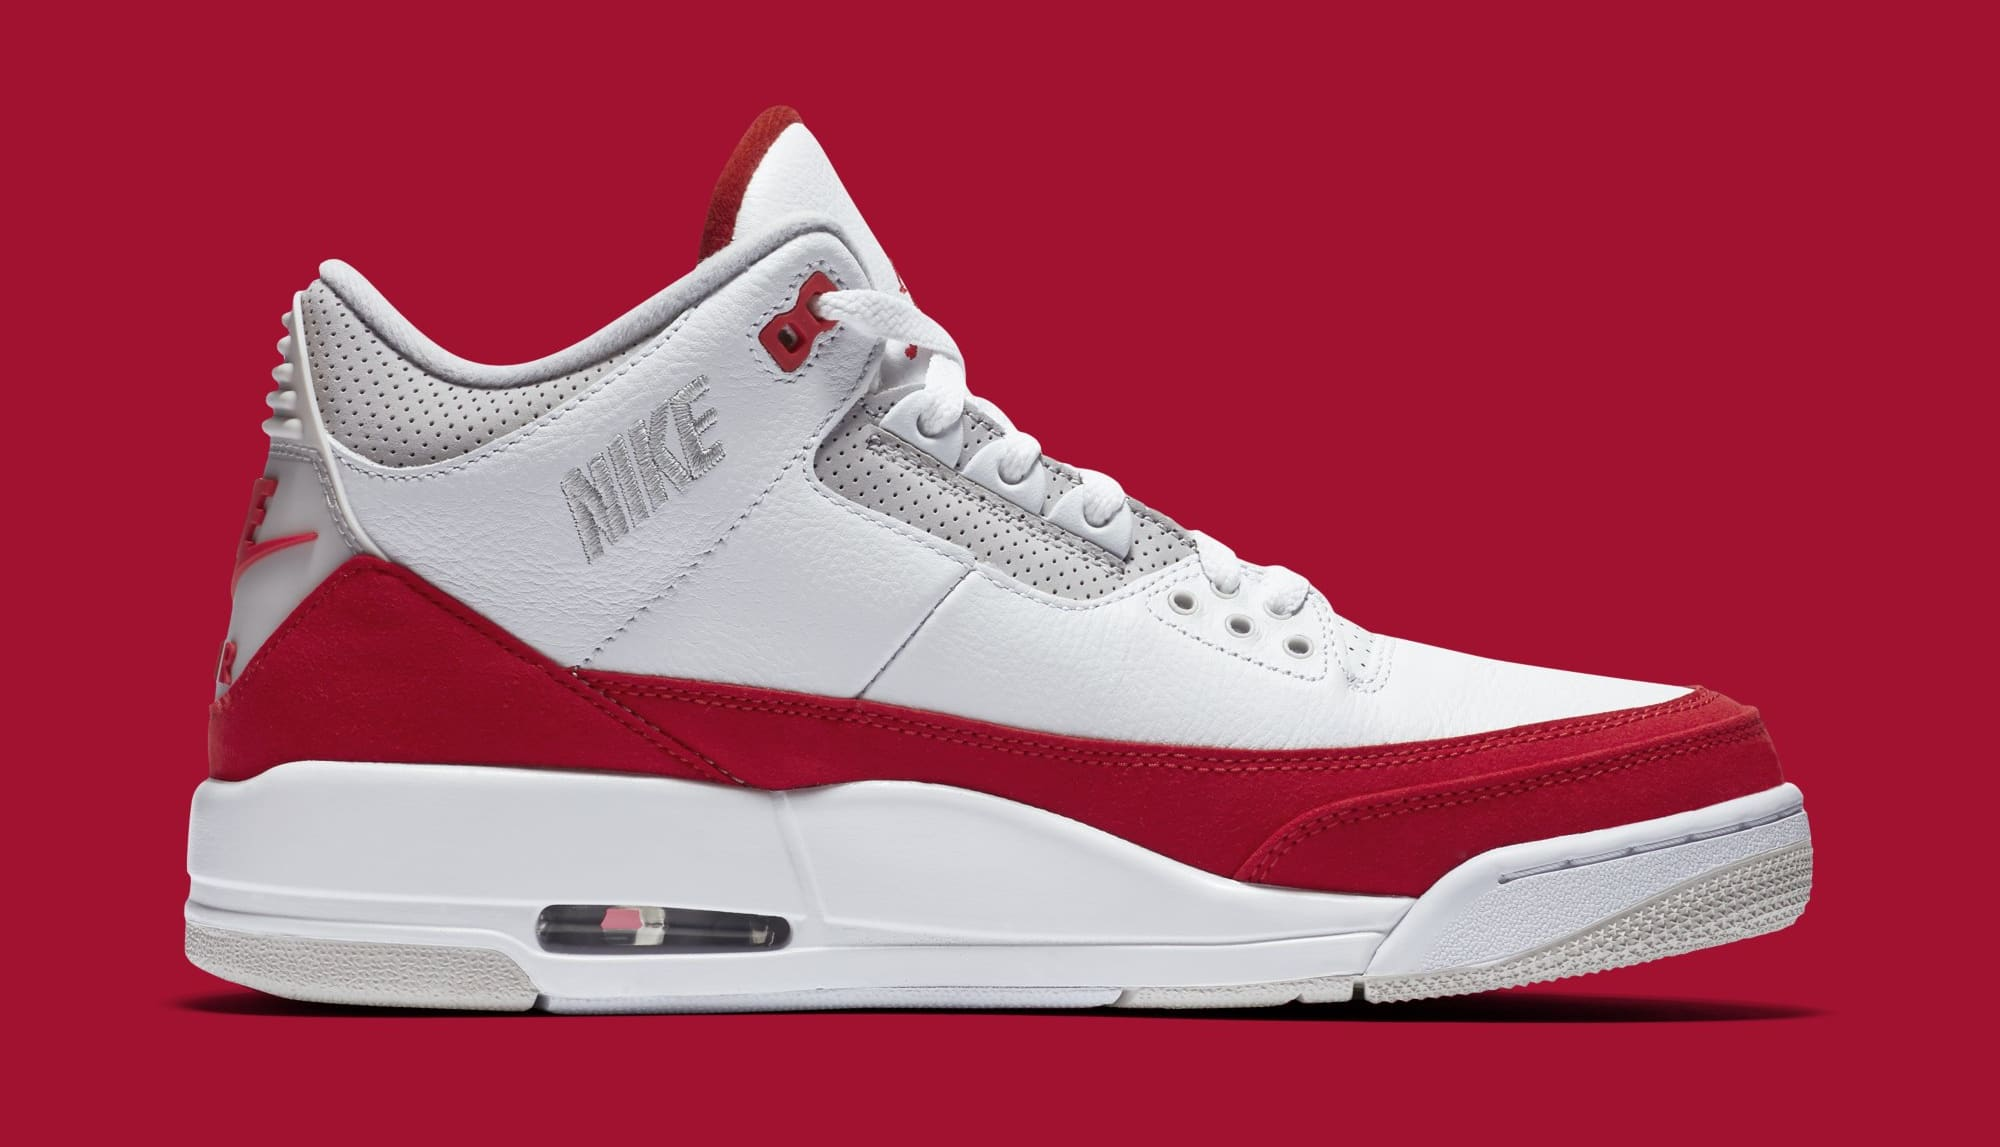 4c1ff442697 Air Jordan 3 TH SP 'Katrina' White/University Red-Neutral Grey Release Date  | Sole Collector